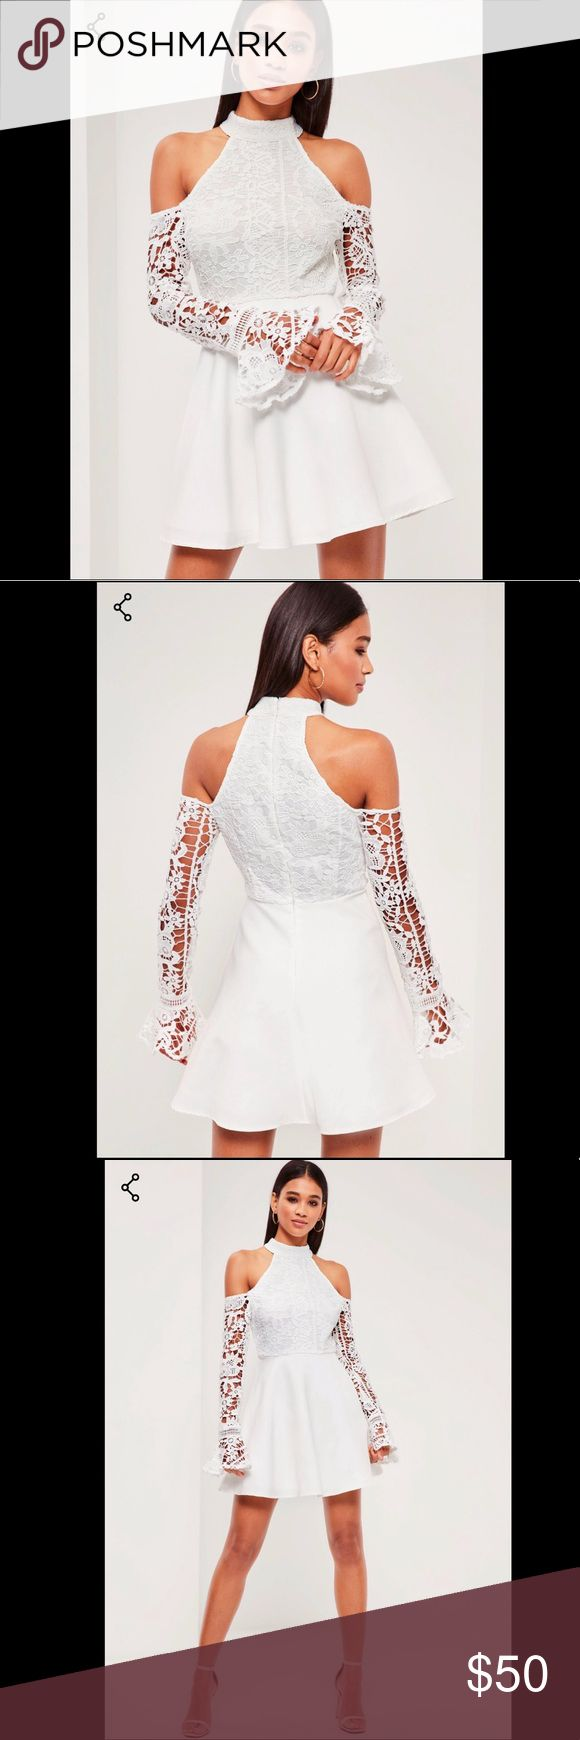 Missguided White Dress This beautiful dress is perfect for your special occasion I originally purchased for my wedding reception but ended up wanting a different style. The dress is brand new never worn !! And highly discounted please make a reasonable offer Missguided Dresses Wedding